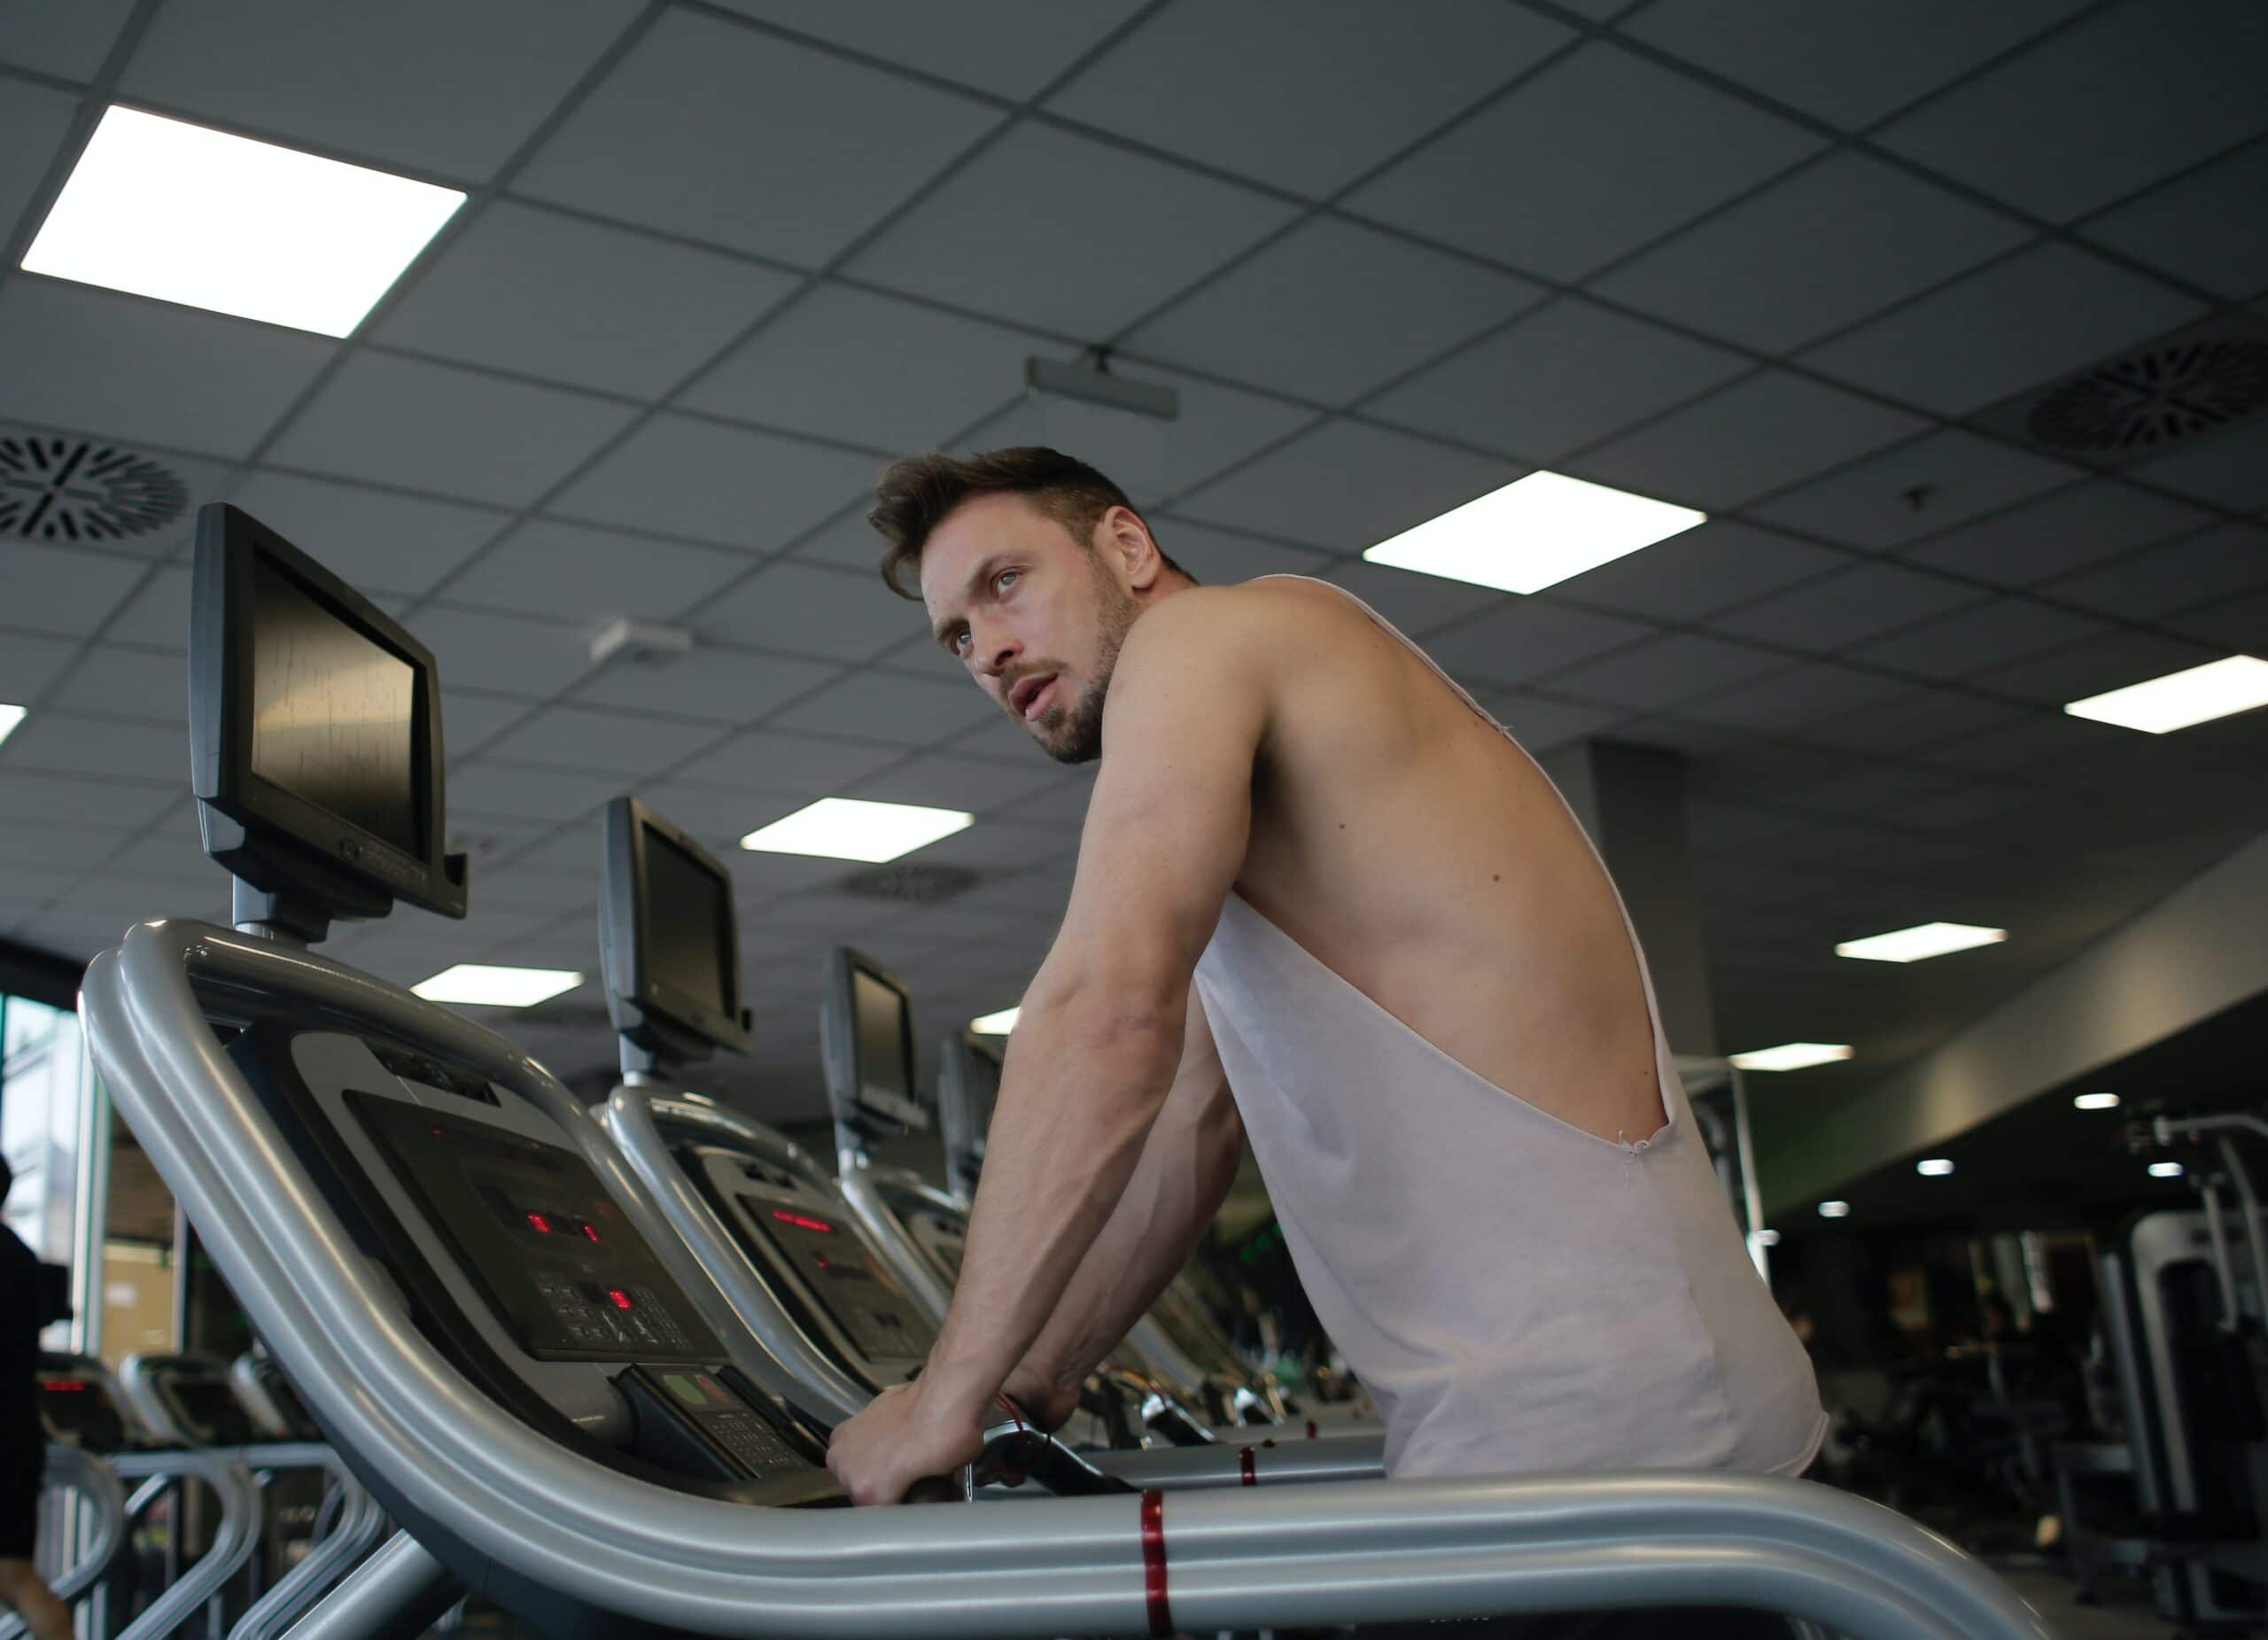 Best Shock Absorbing Treadmills are perfect for Bad Knees